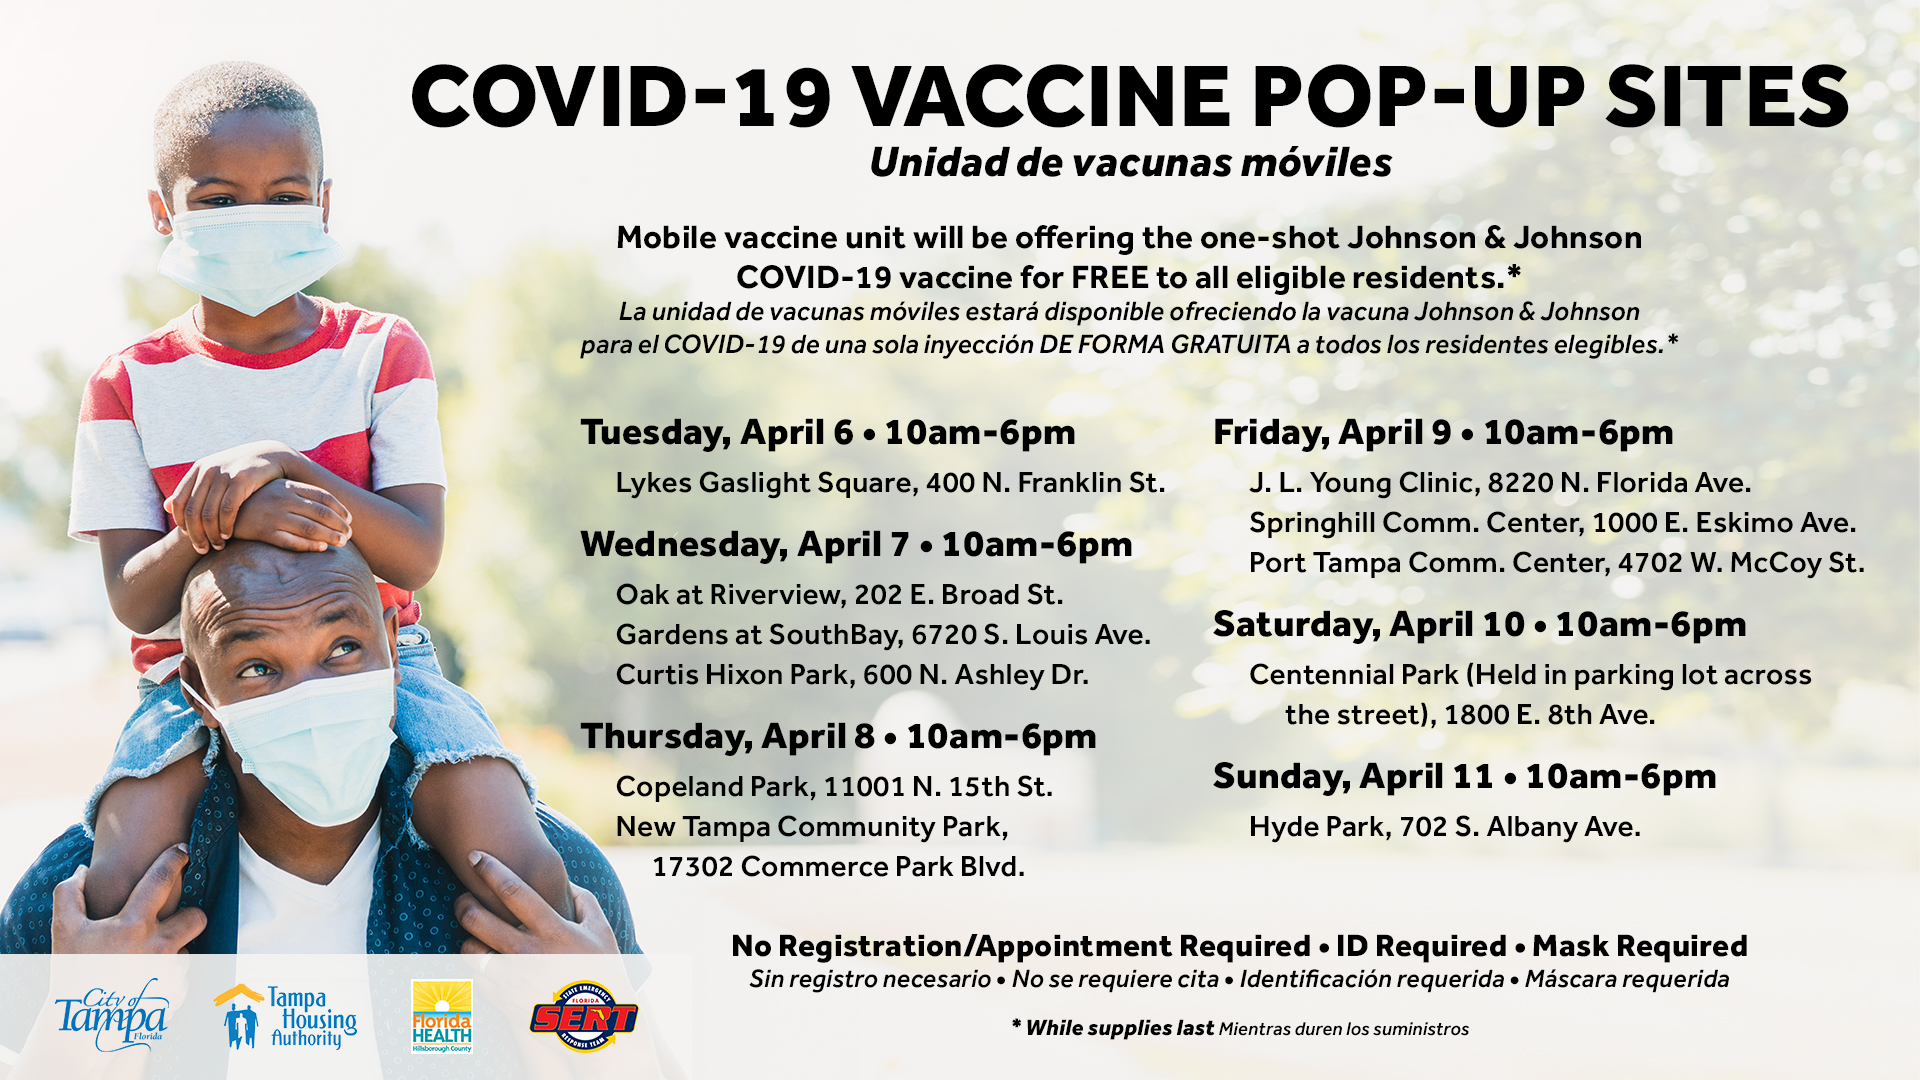 Poster showing COVID-19 vaccine pop-up sites for Tuesday, April 6, 2021 through Sunday, April 11, 2021